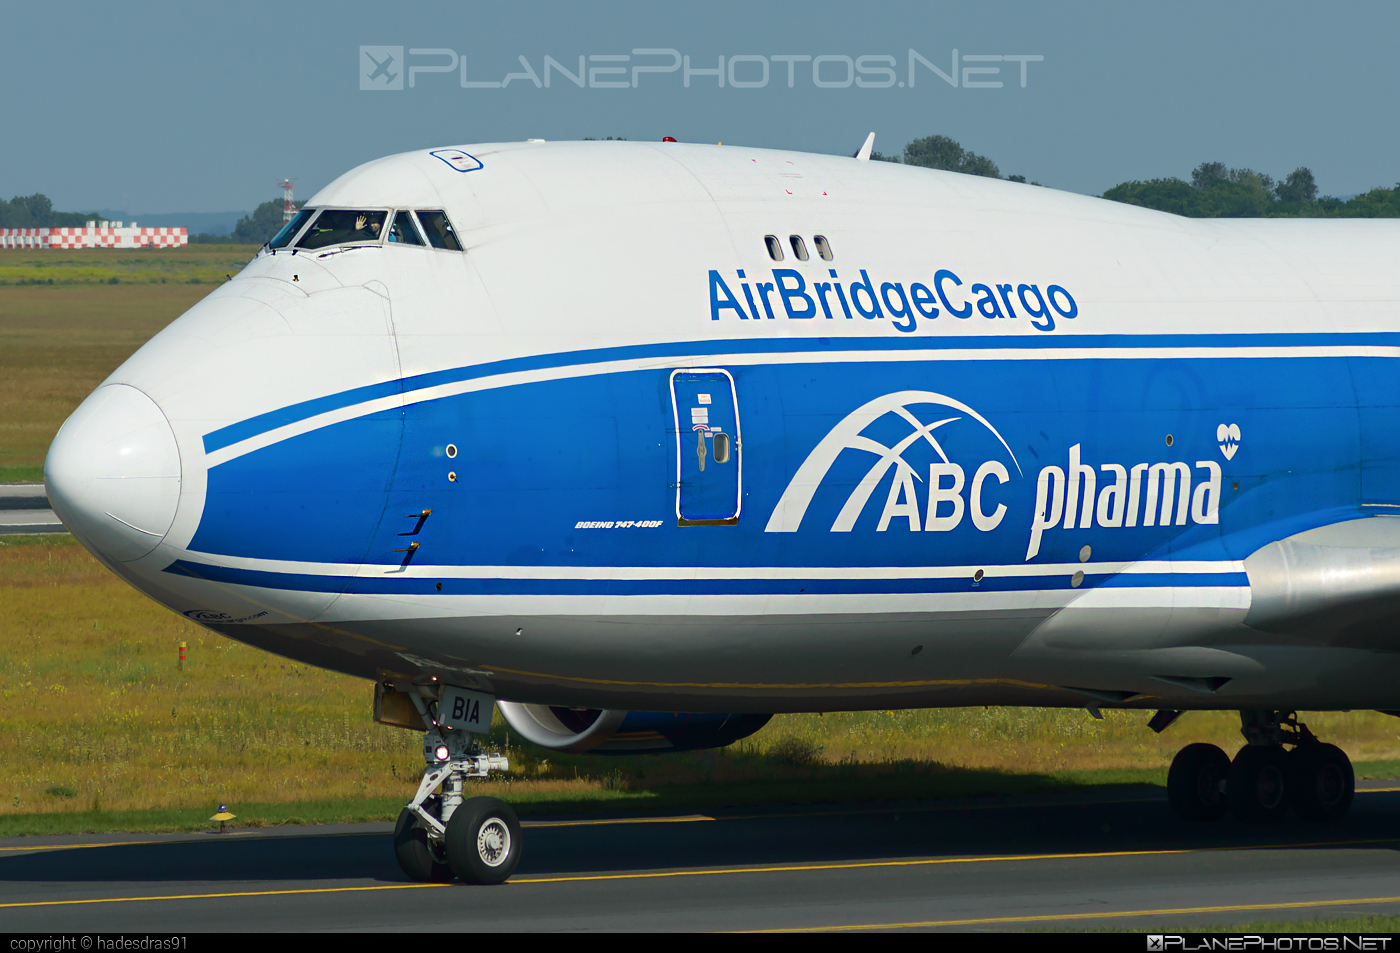 Boeing 747-400F - VQ-BIA operated by AirBridgeCargo #airbridgecargo #b747 #boeing #boeing747 #jumbo